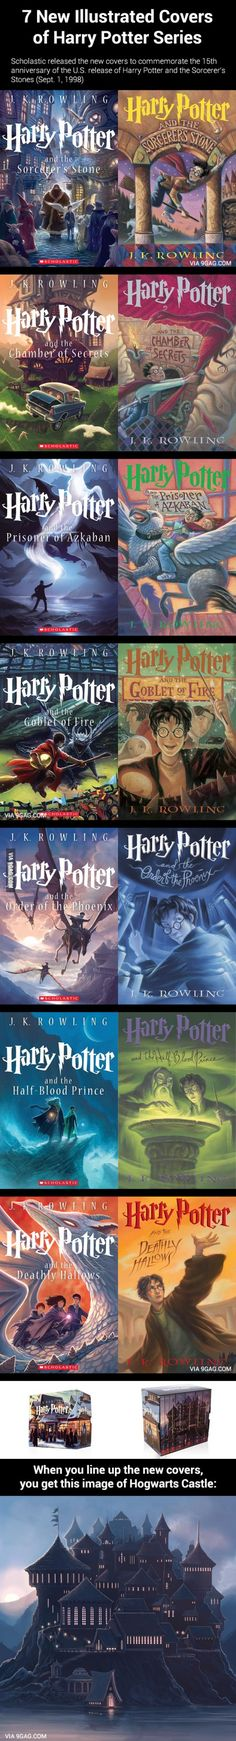 7 New Illustrated Covers of Harry Potter Series... PLEEEAAASSE.